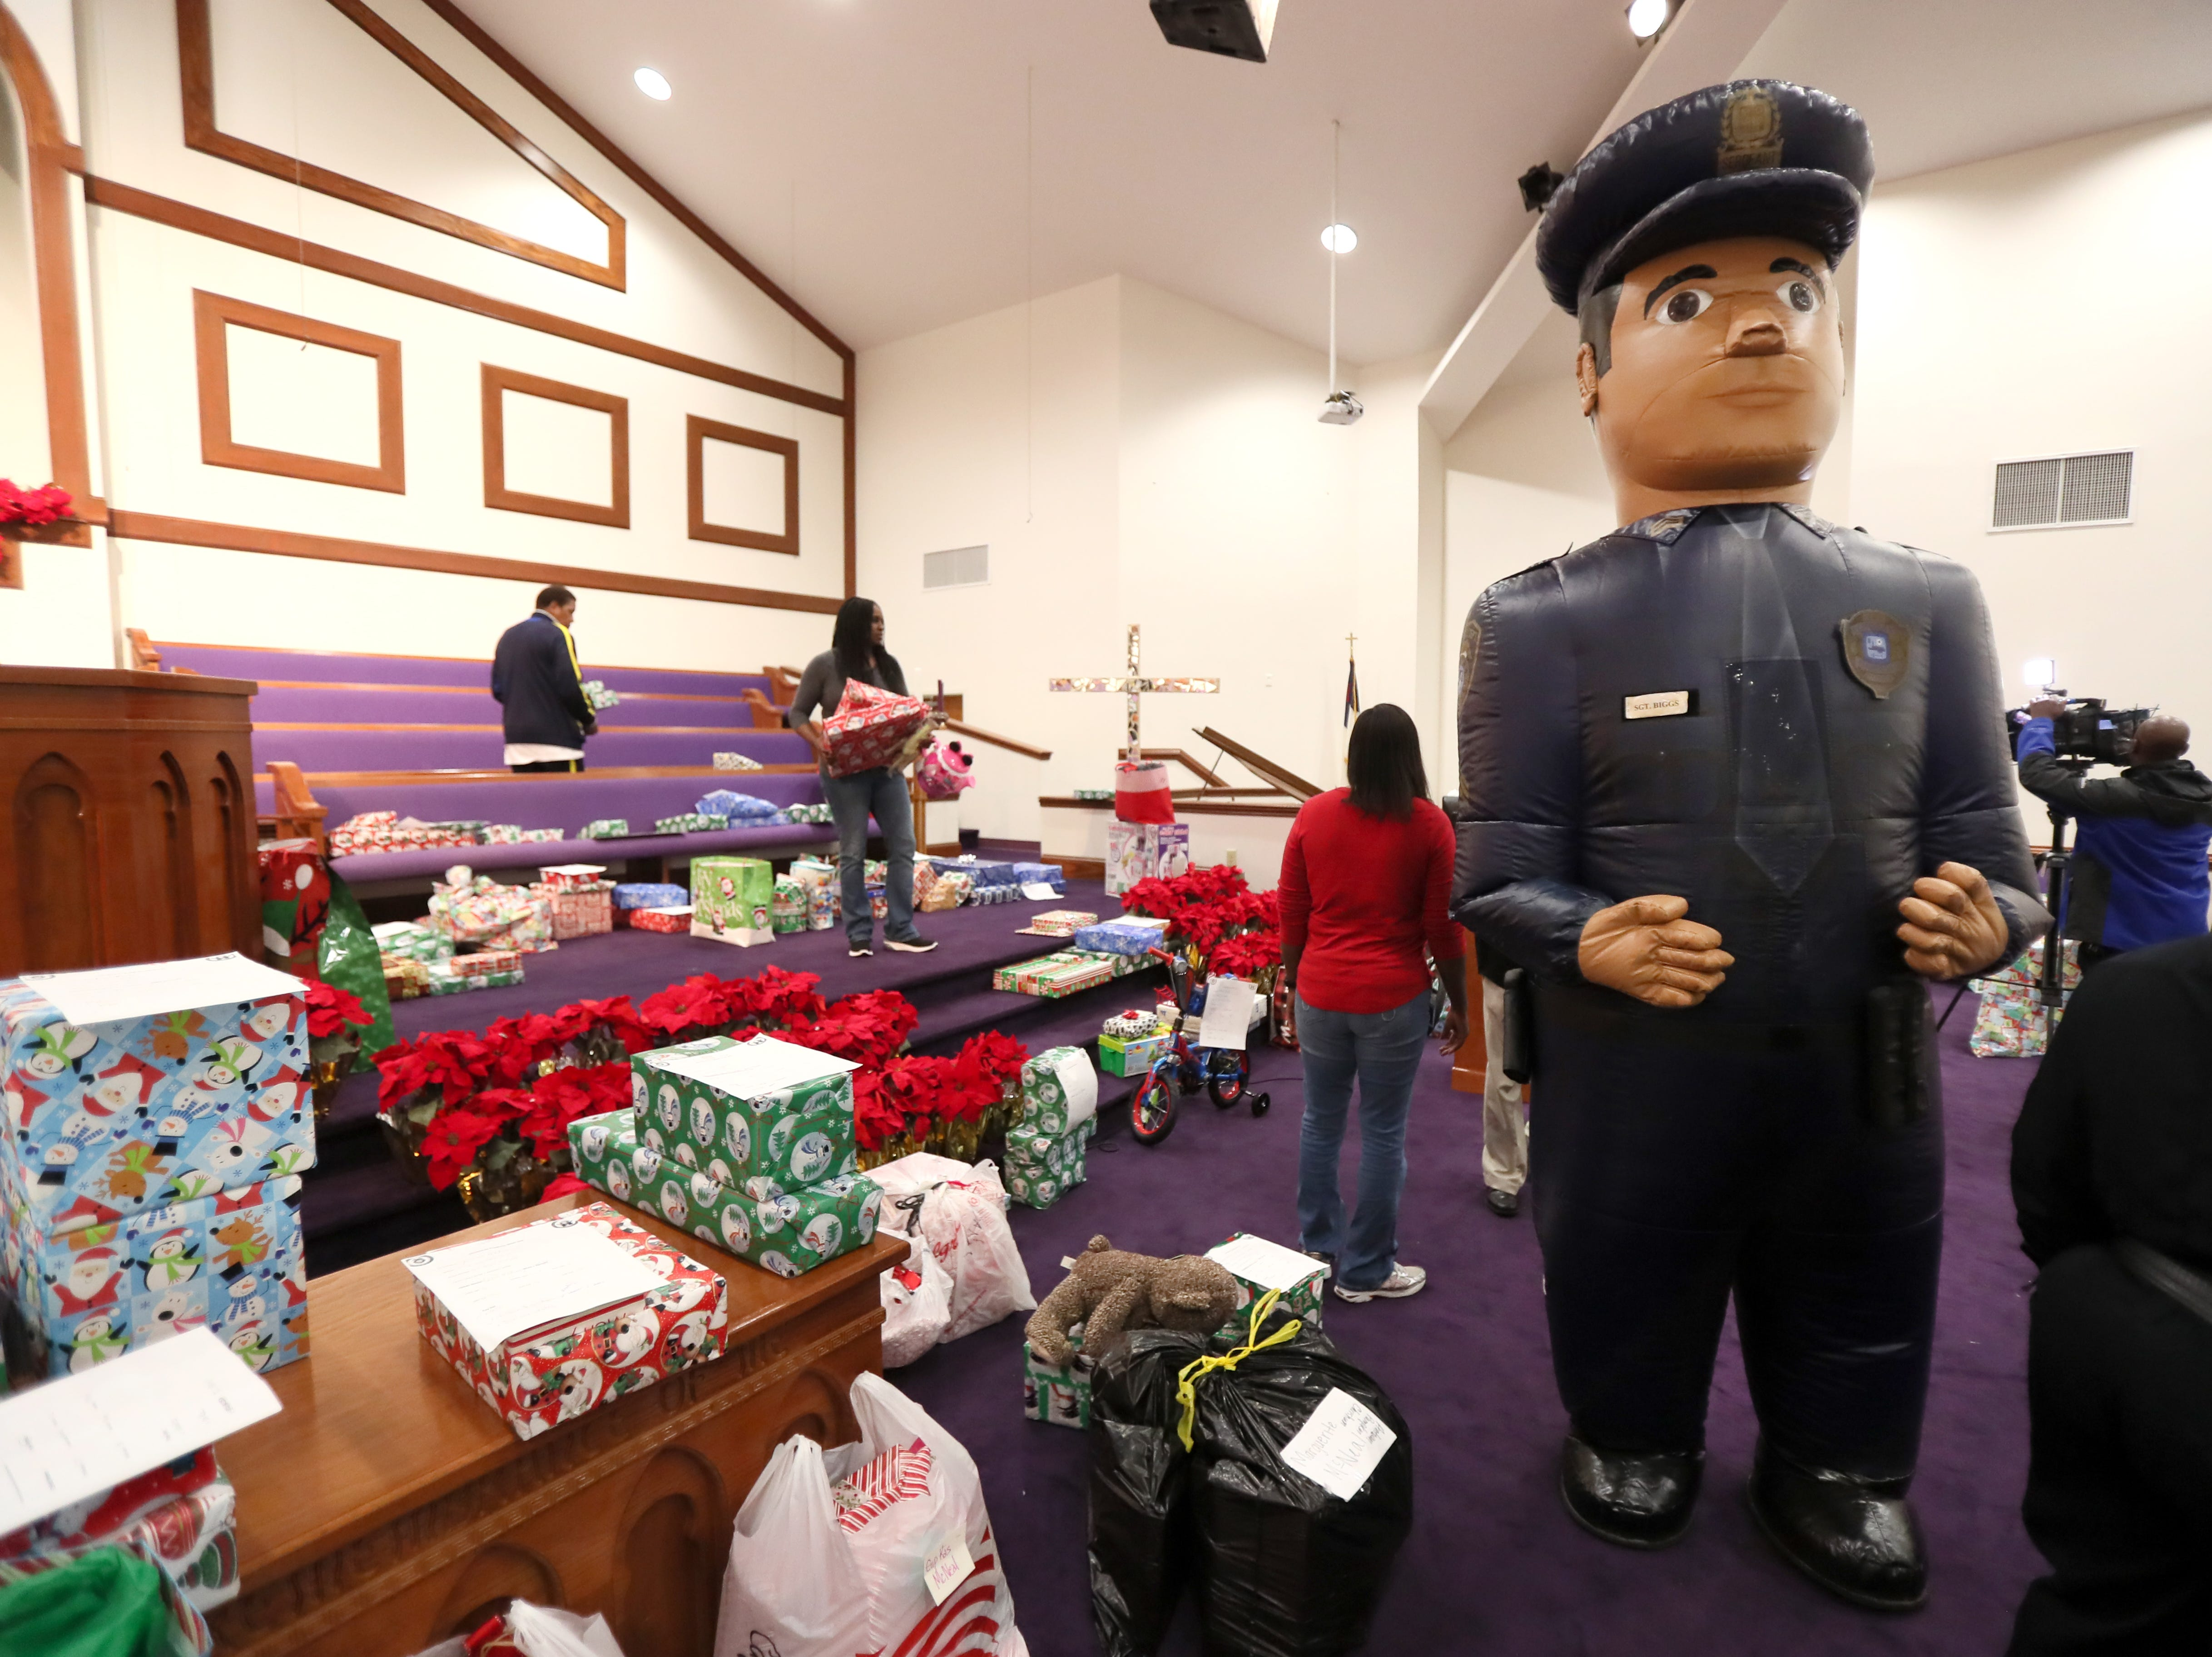 'Sgt. Biggs', MPD's Community Outreach Program mascot delights children as the unit brings Christmas cheer to families at Grace Missionary Baptist Church on Thursday, Dec. 20, 2018.